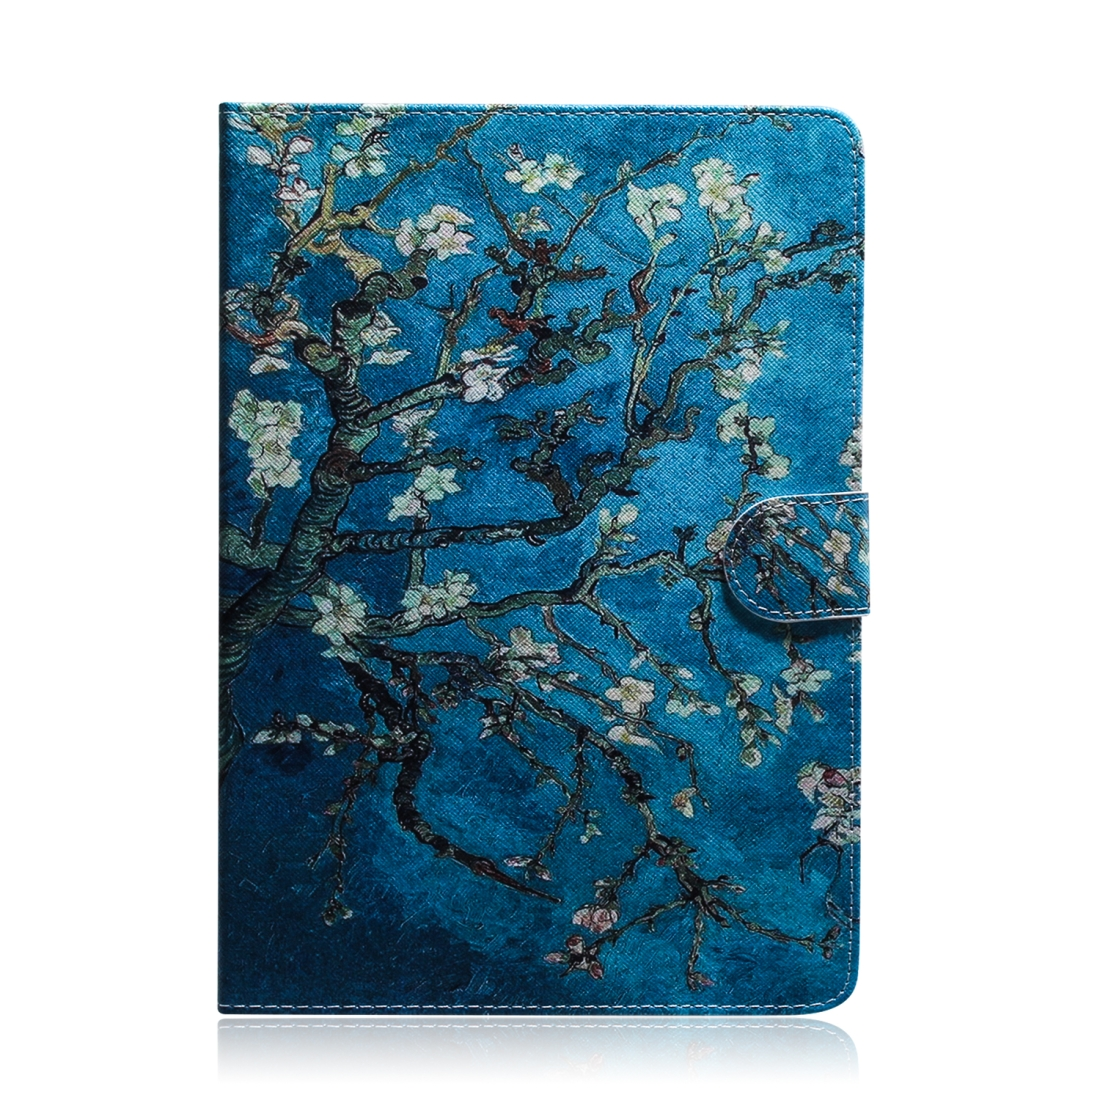 Apricot Blossom Leather Case for  iPad Pro 11 inch (2018), with Sleeve